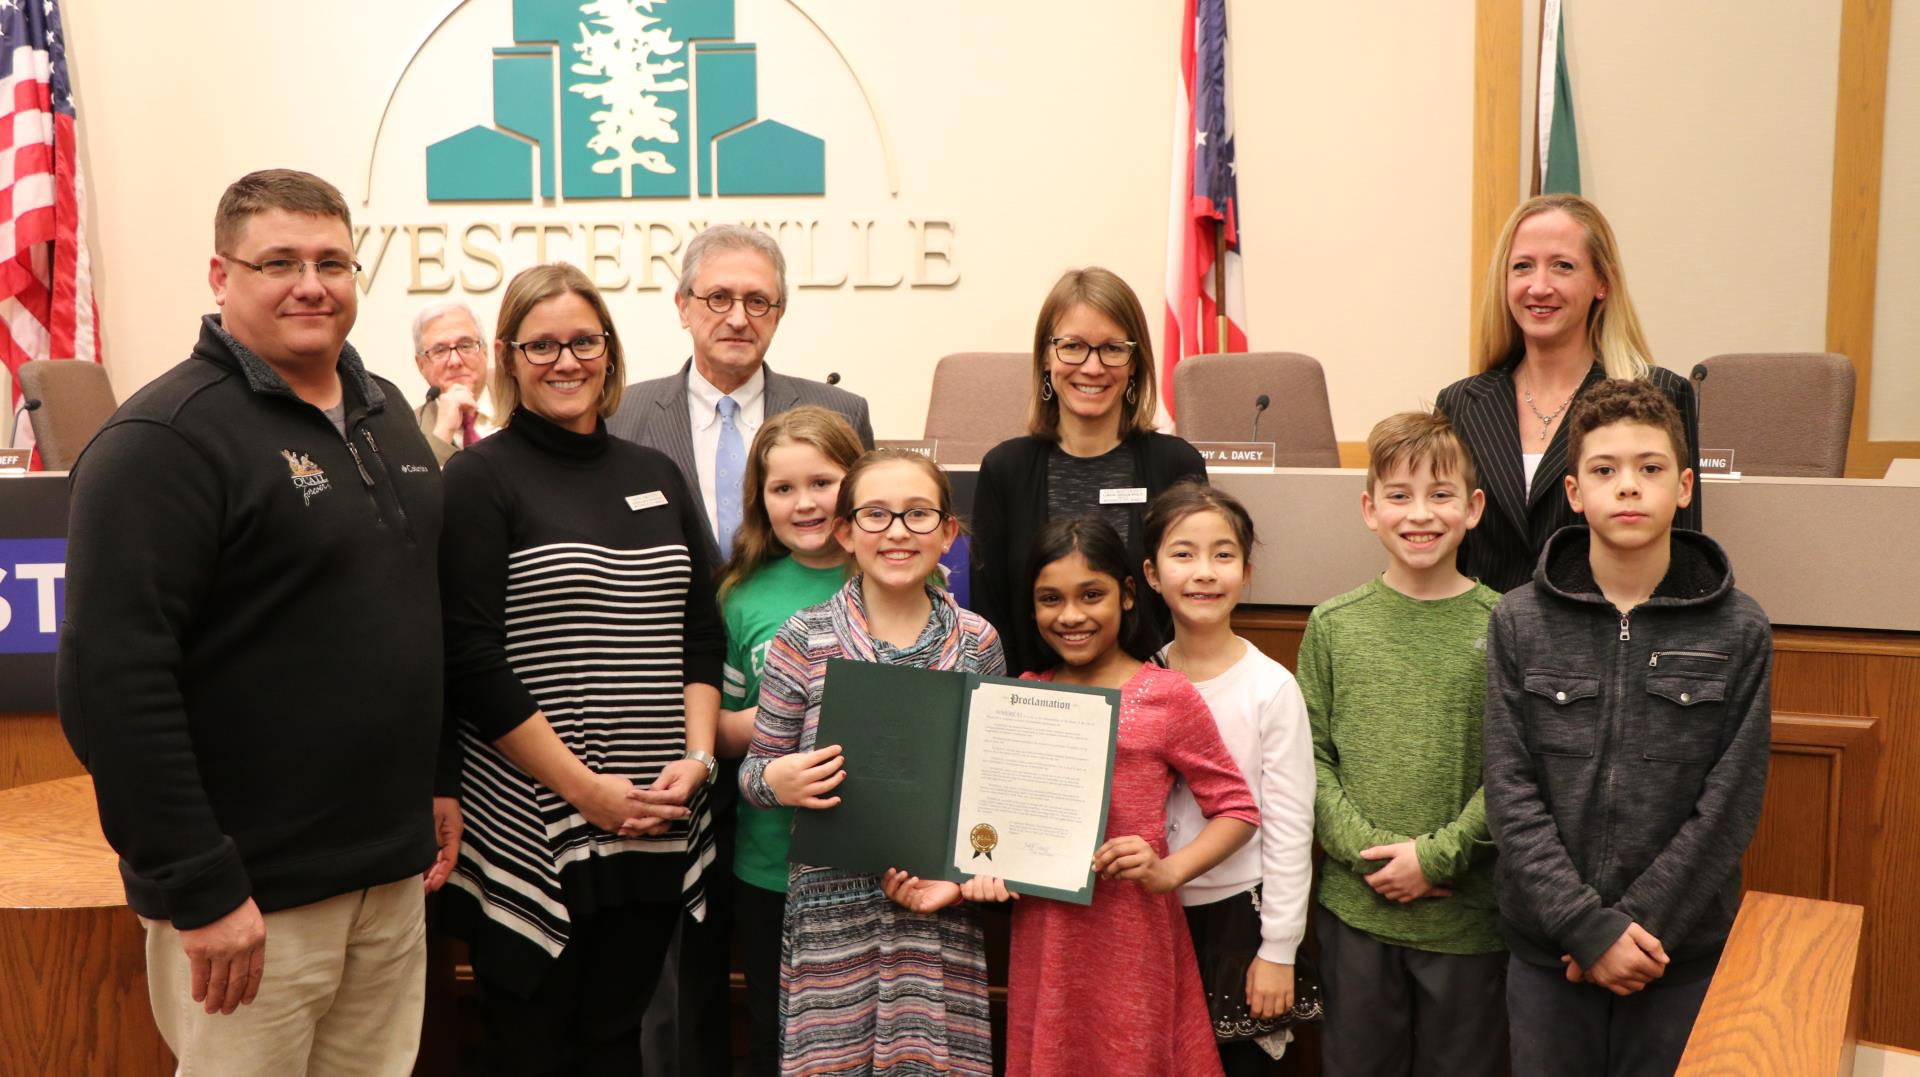 Mike Reterer w./ Ohio Pollinator Habitat Initiative and Susie Smucker and Kate Mantenicks with Westerville City Schools accepted Proclamation